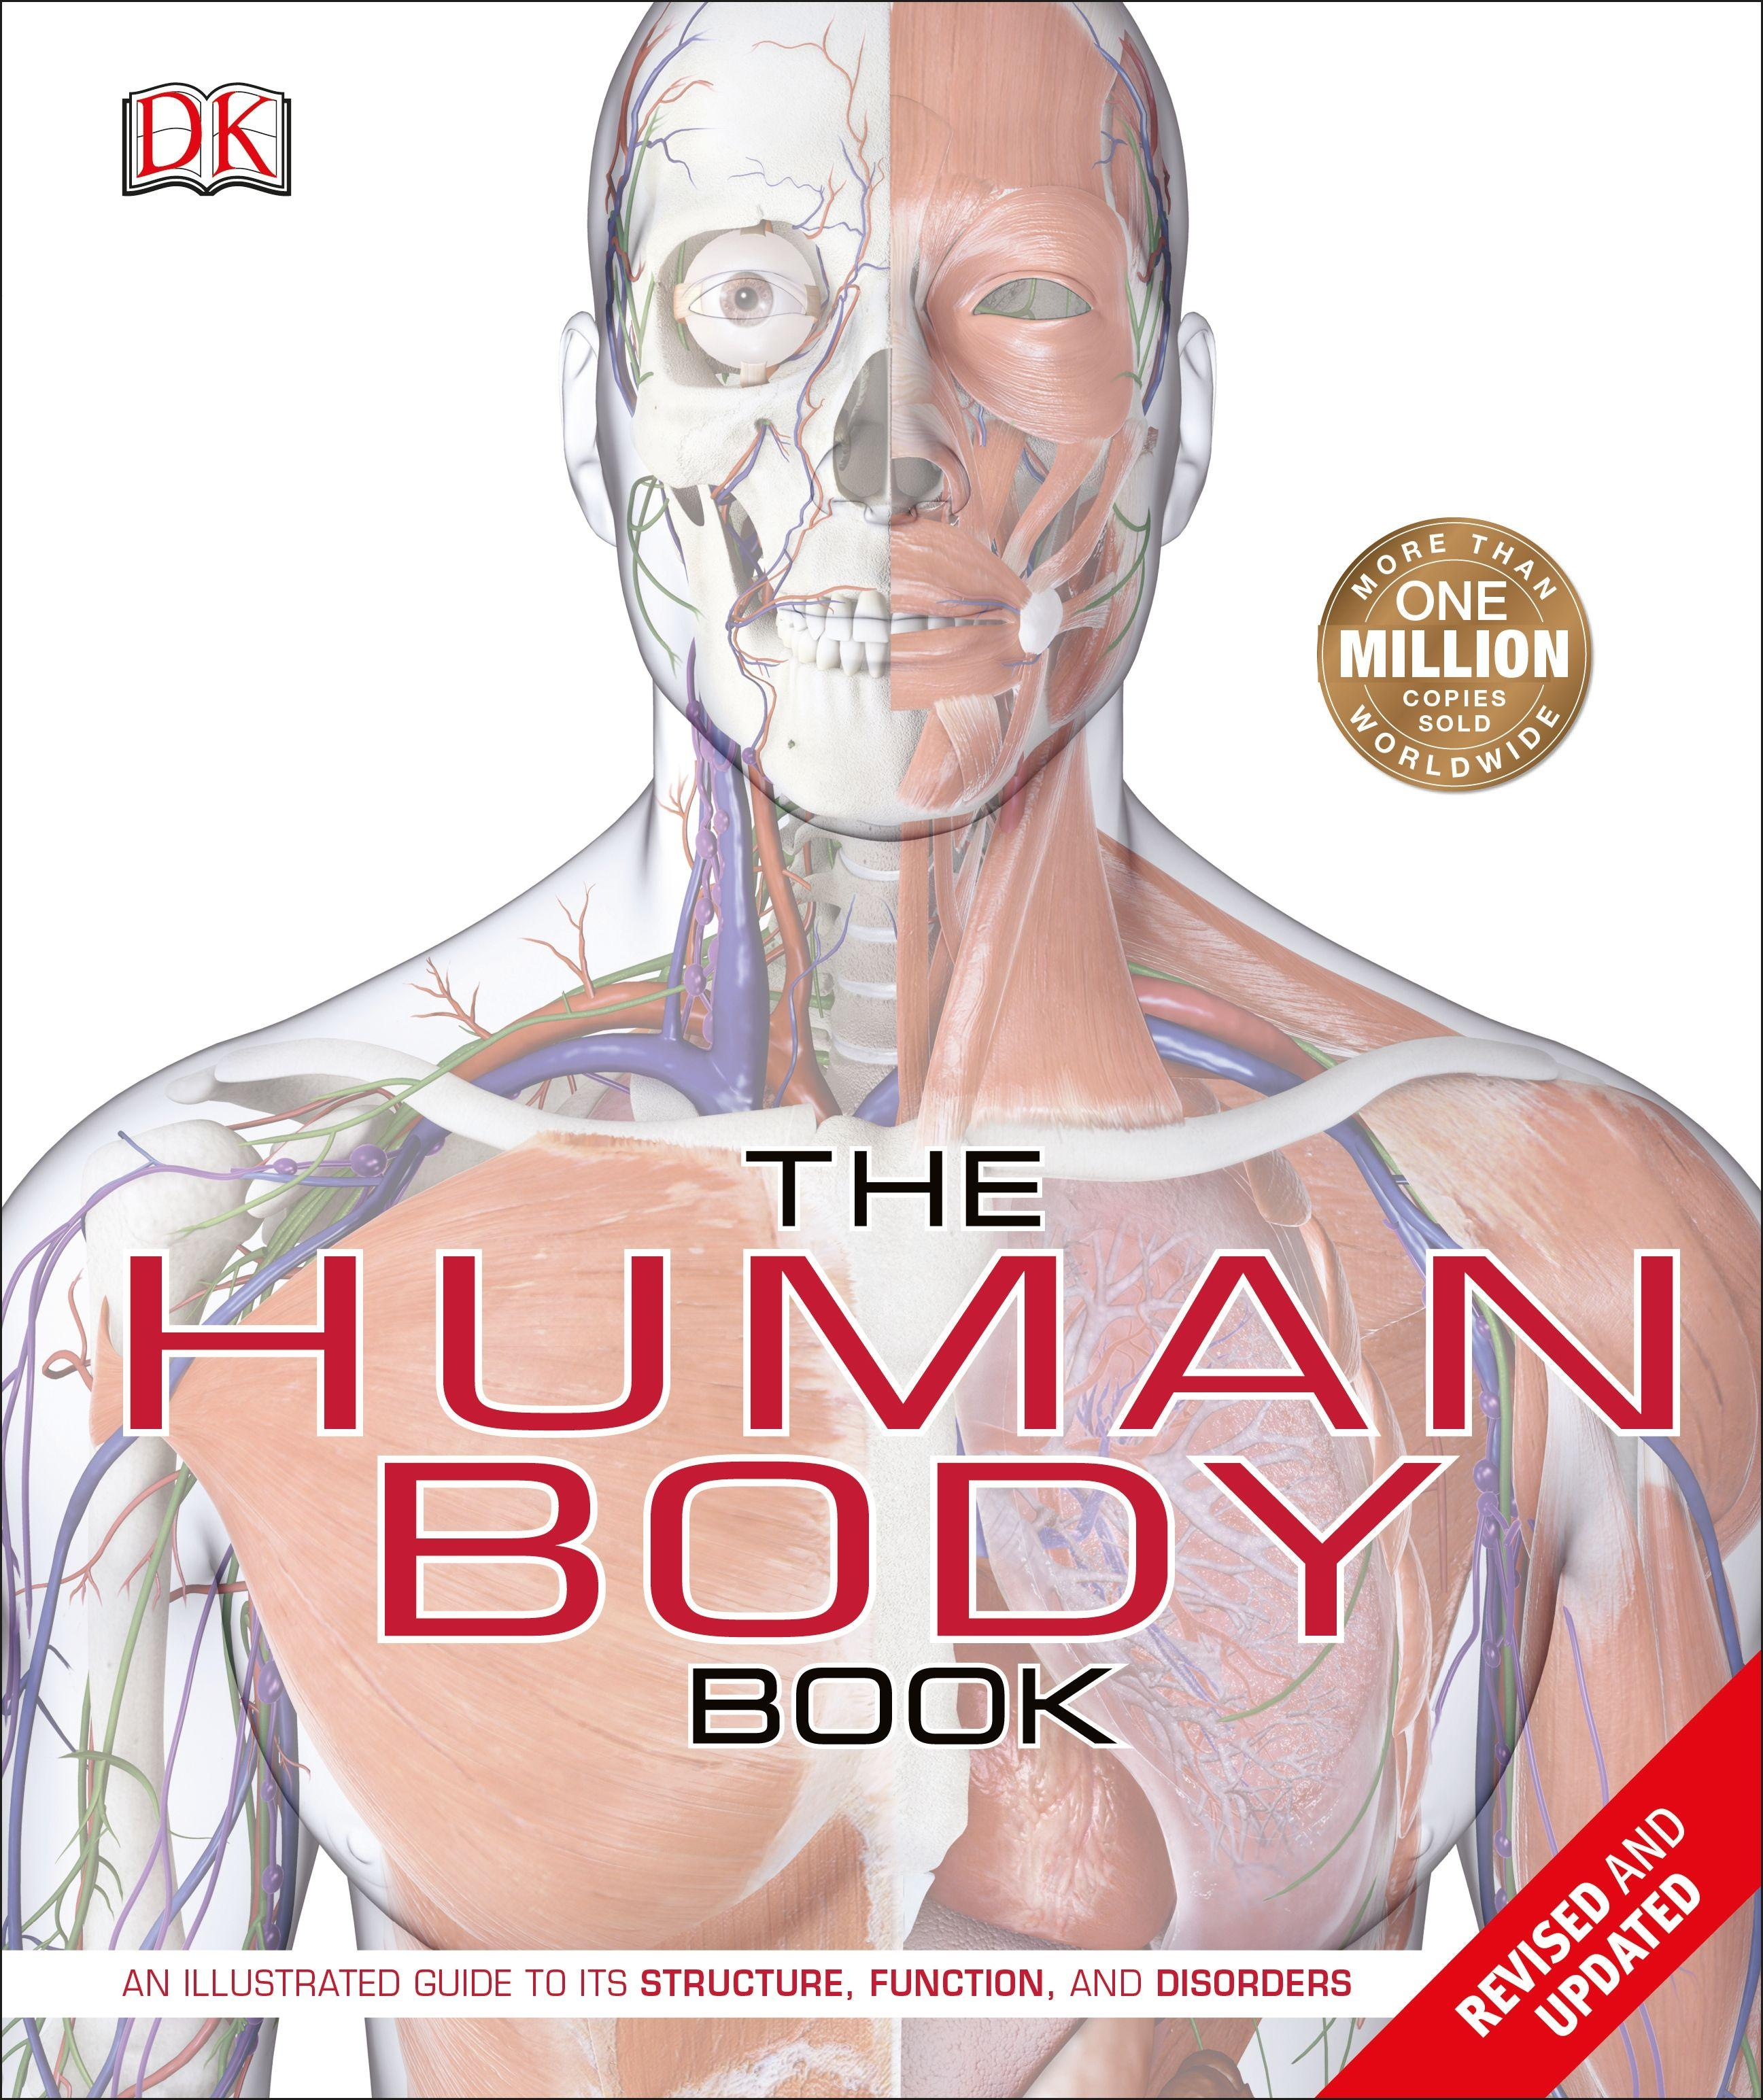 The Human Body Book by DK